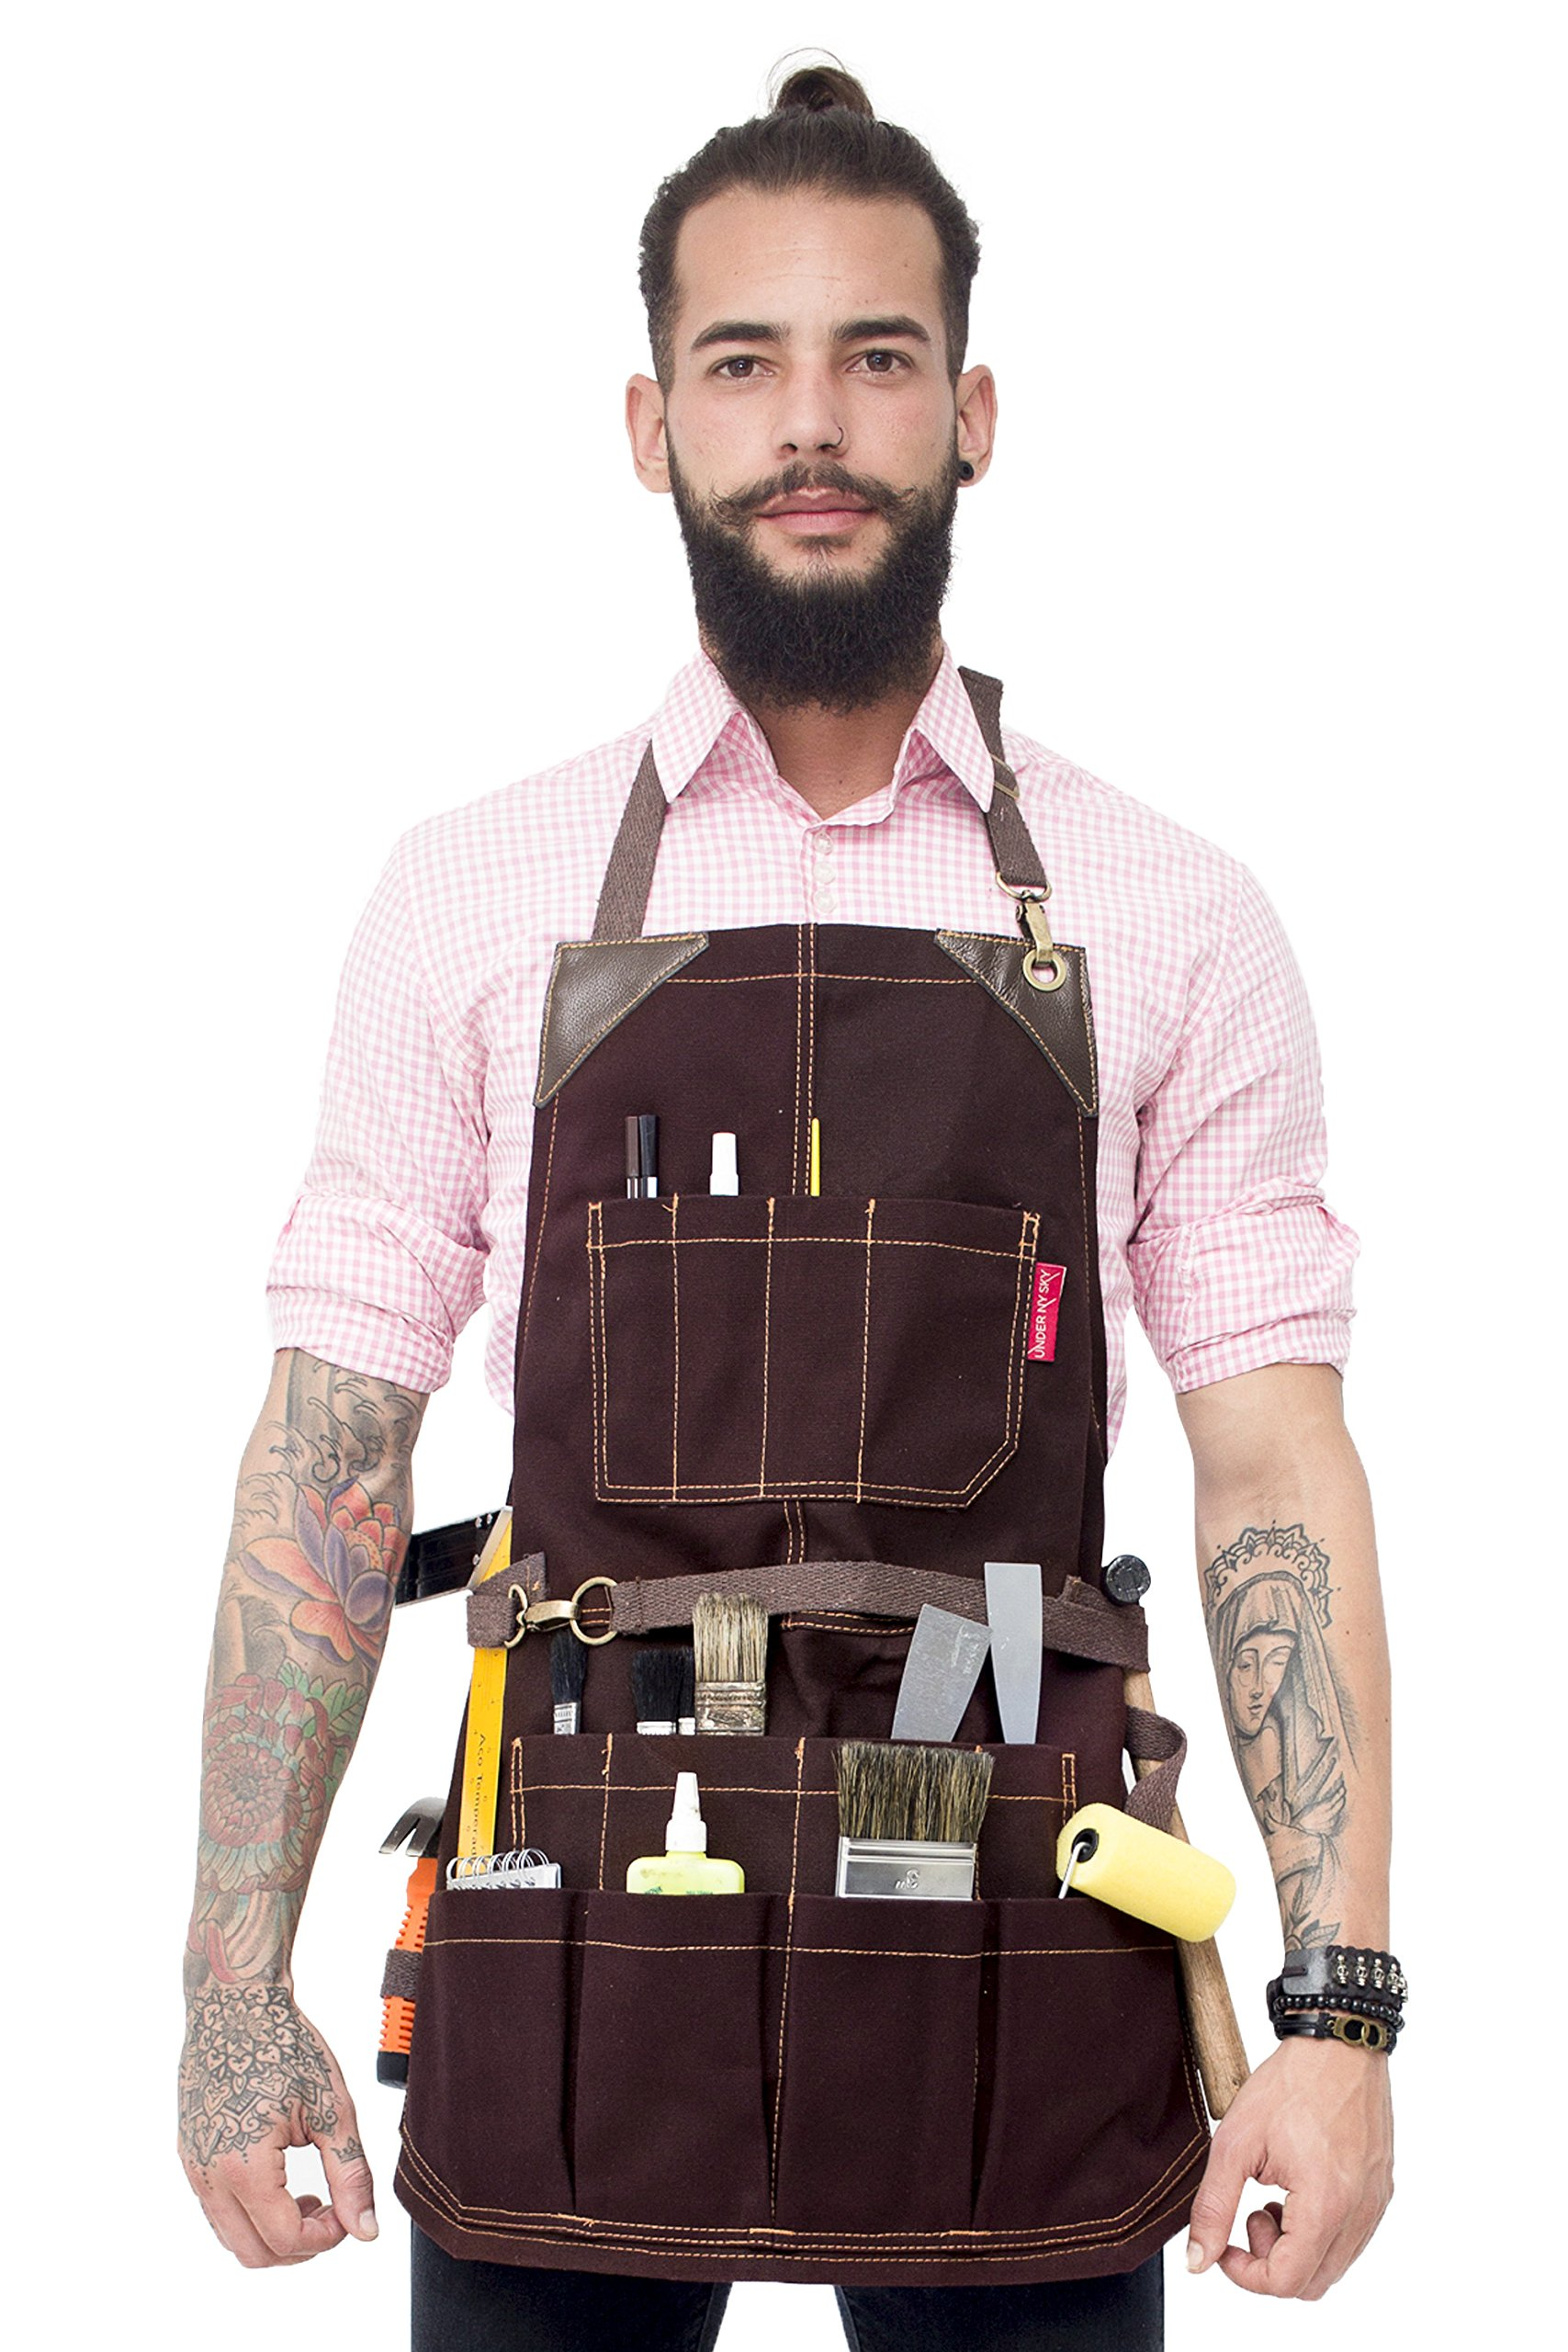 Under NY Sky Tool Brown Apron – Heavy-Duty Waxed Canvas, Leather Reinforcement, Extra Pockets – Adjustable for Men, Women – Pro Mechanic, Woodworker, Blacksmith, Plumber, Electrician, Welder Aprons